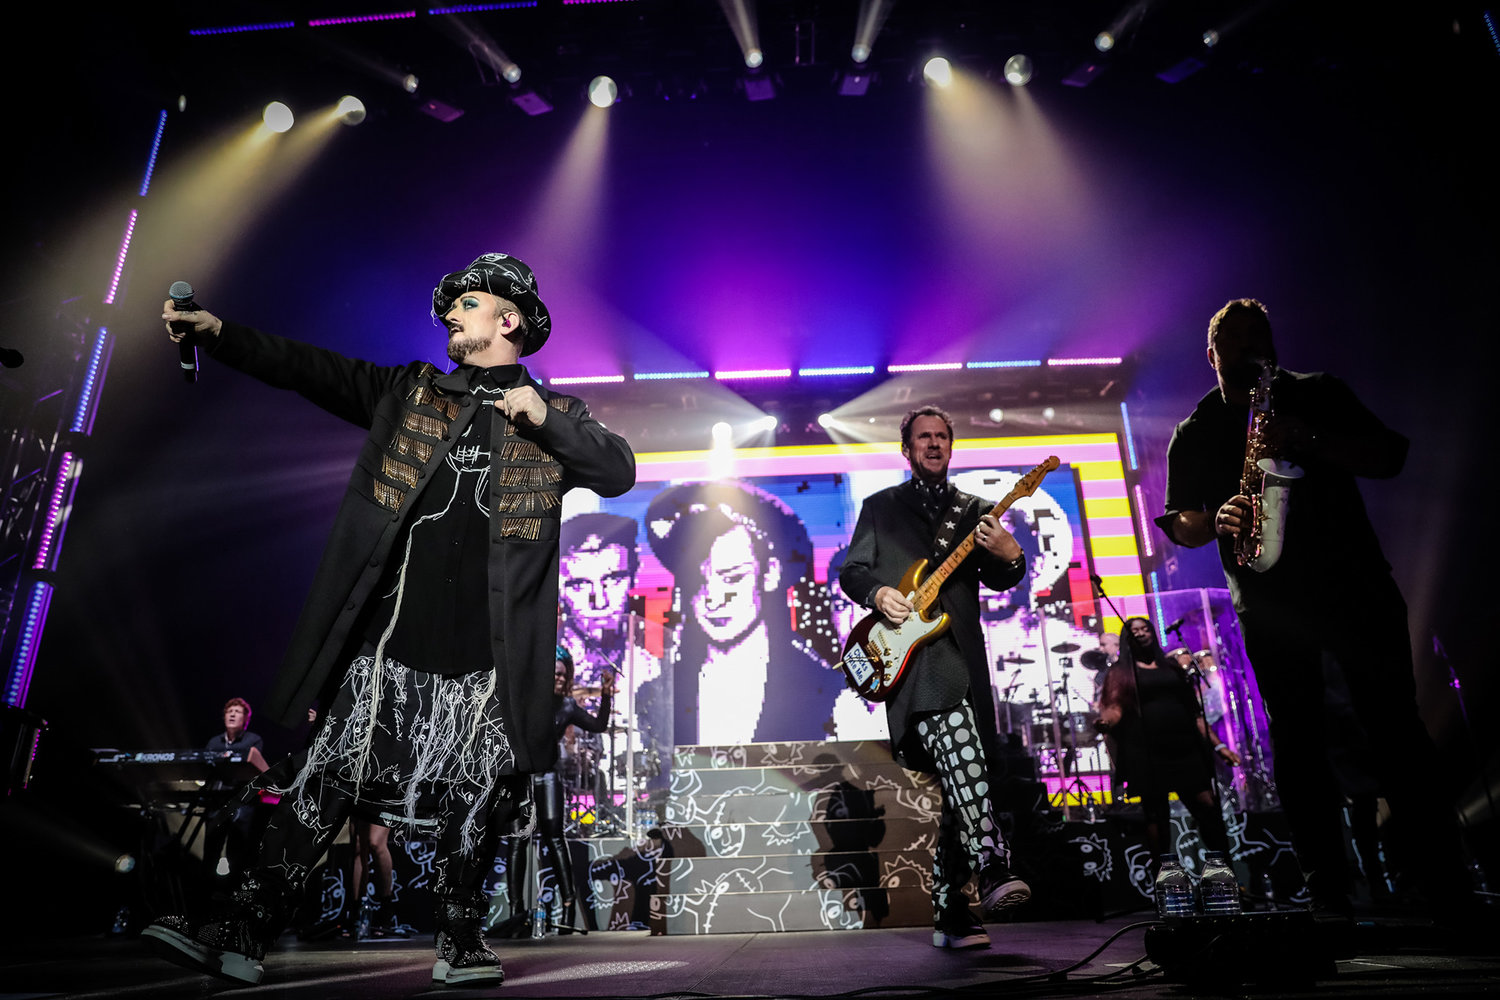 PICTURE BY CULTURE CLUB